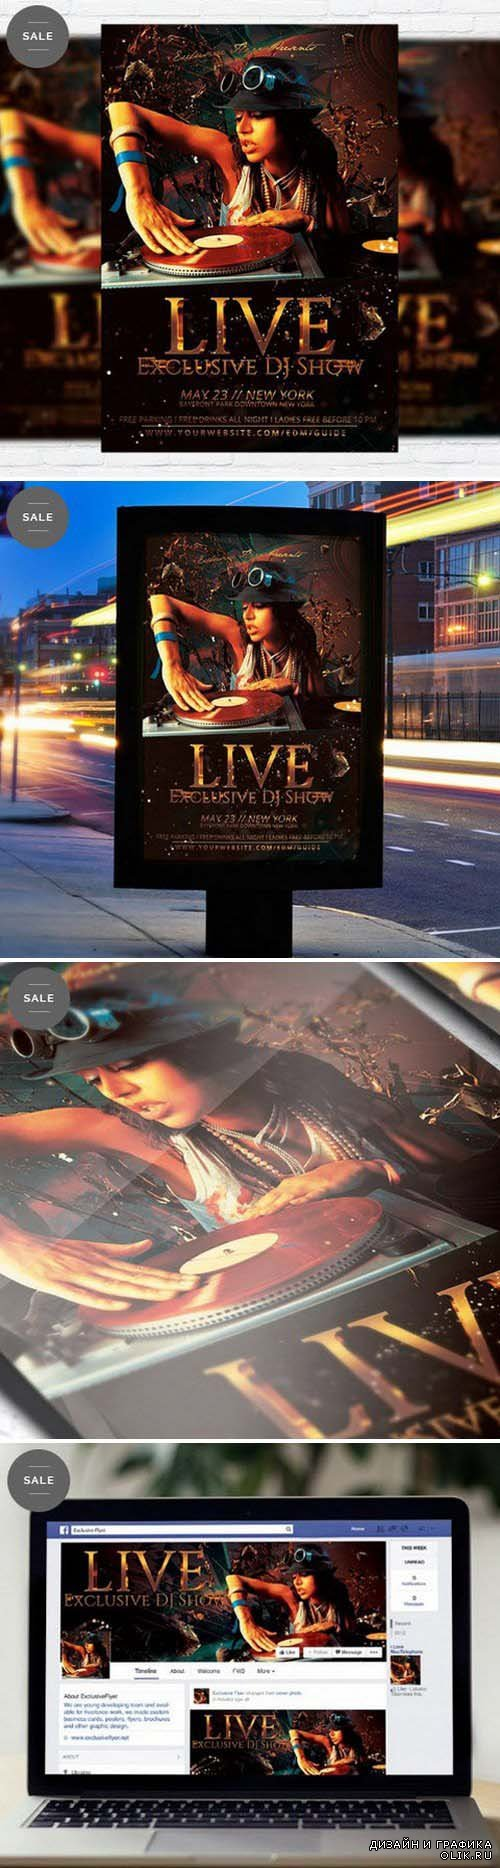 Flyer Template - Exclusive Dj Live Show + Facebook Cover